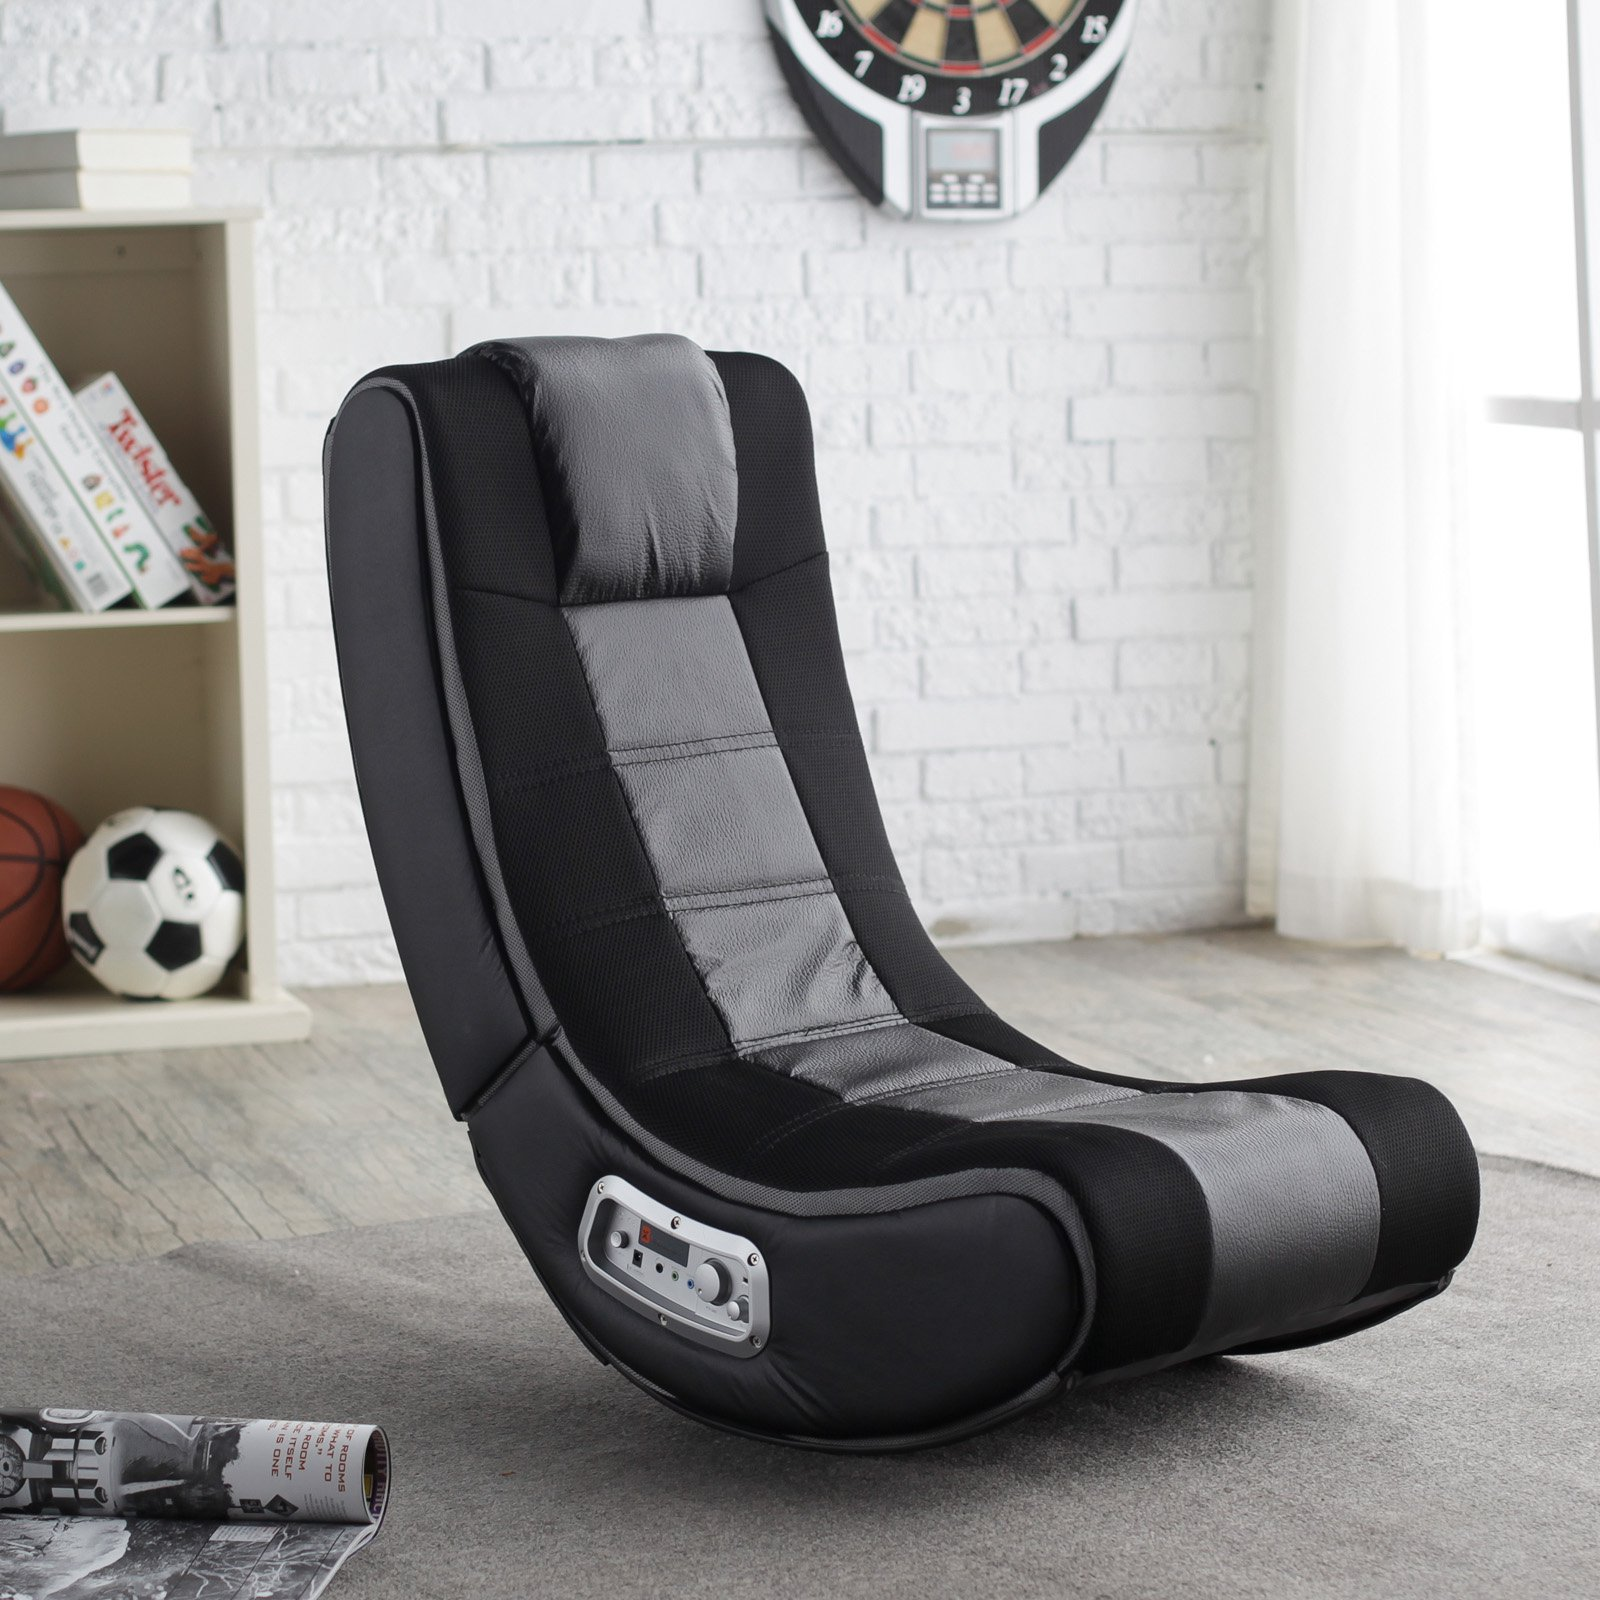 Gamer Sessel Ikea Wireless Gaming Chairs For Xbox 360 Home Furniture Design